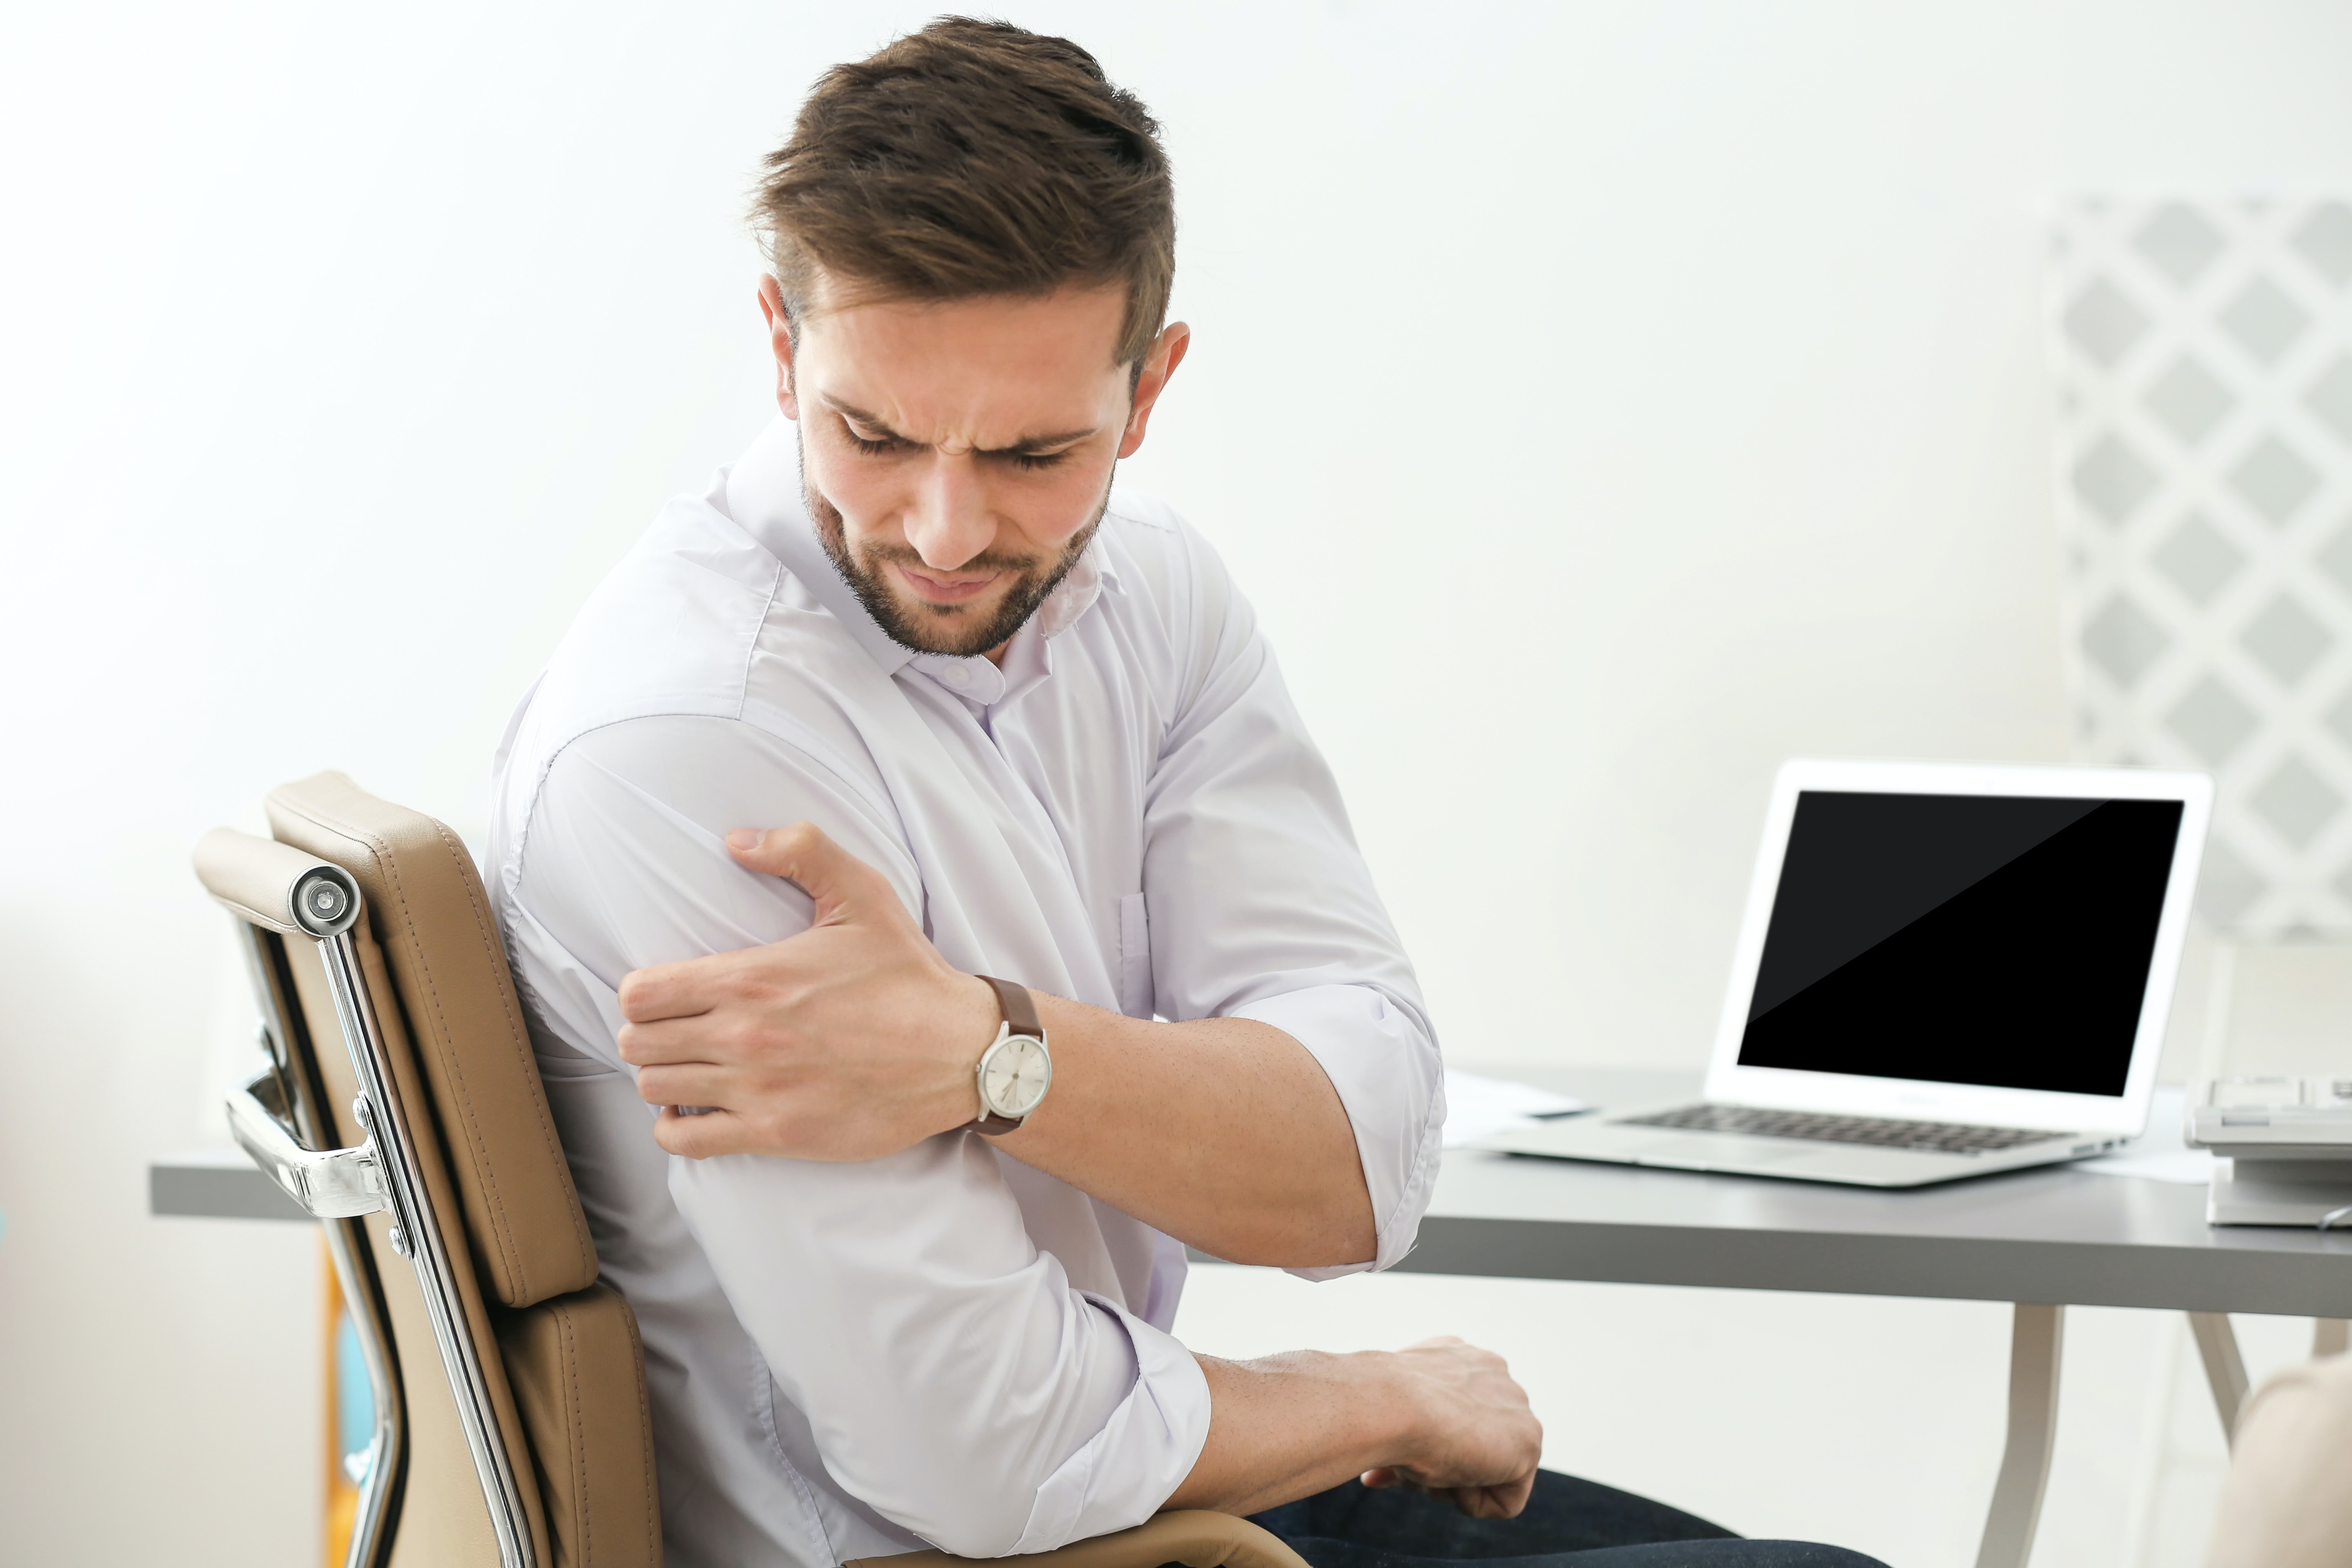 An image depicting a person suffering from shoulder pain that gets worse with movement symptoms